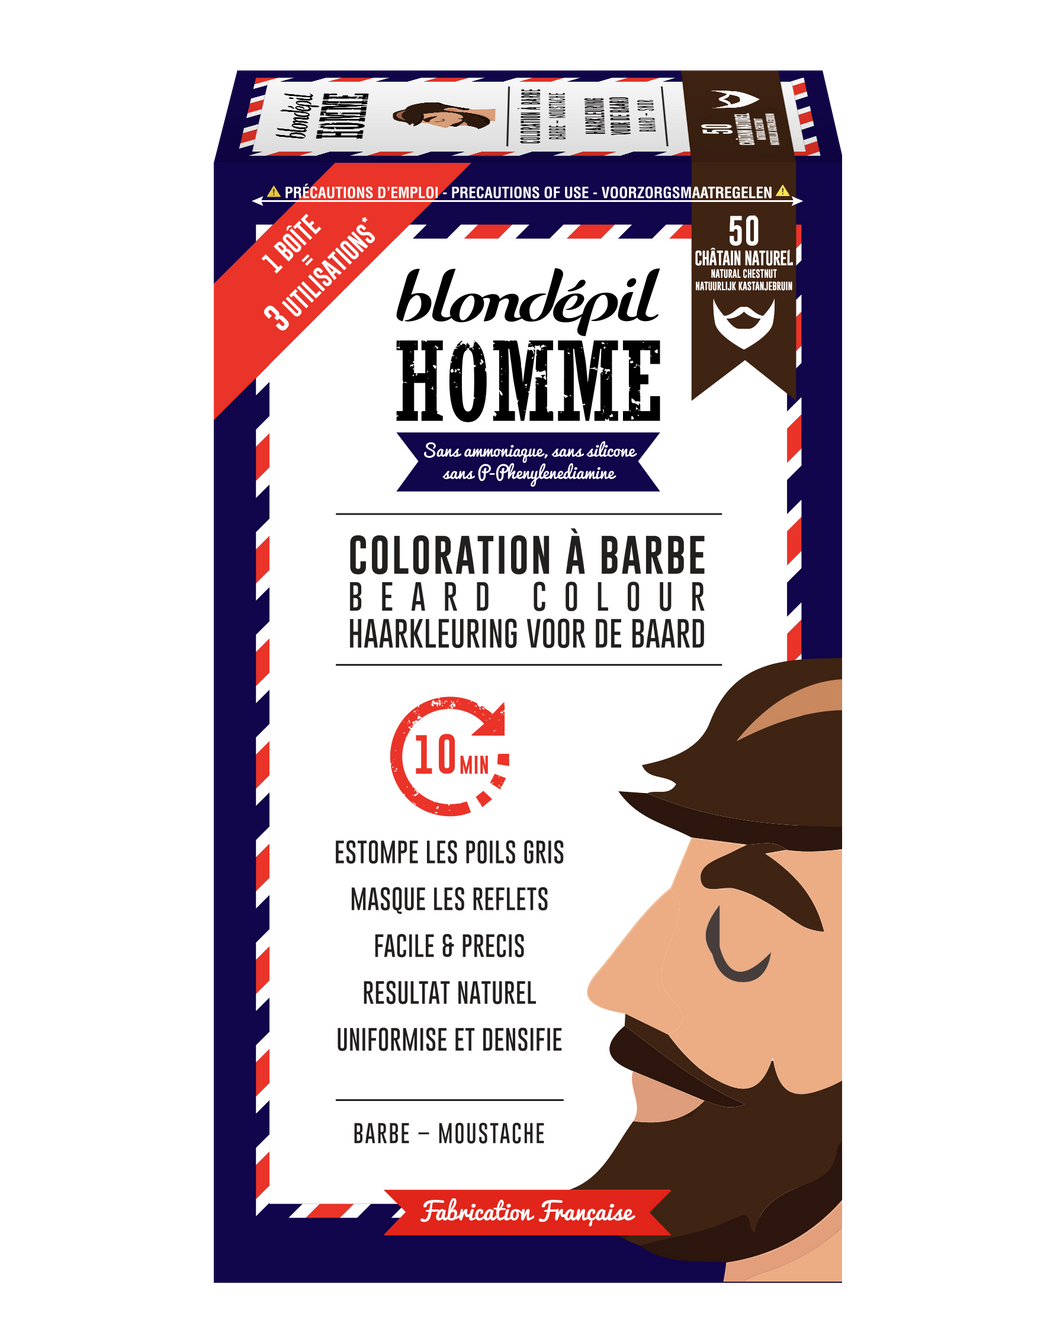 Coloration à Barbe CHATAIN NATUREL n°50 - Blondépil homme